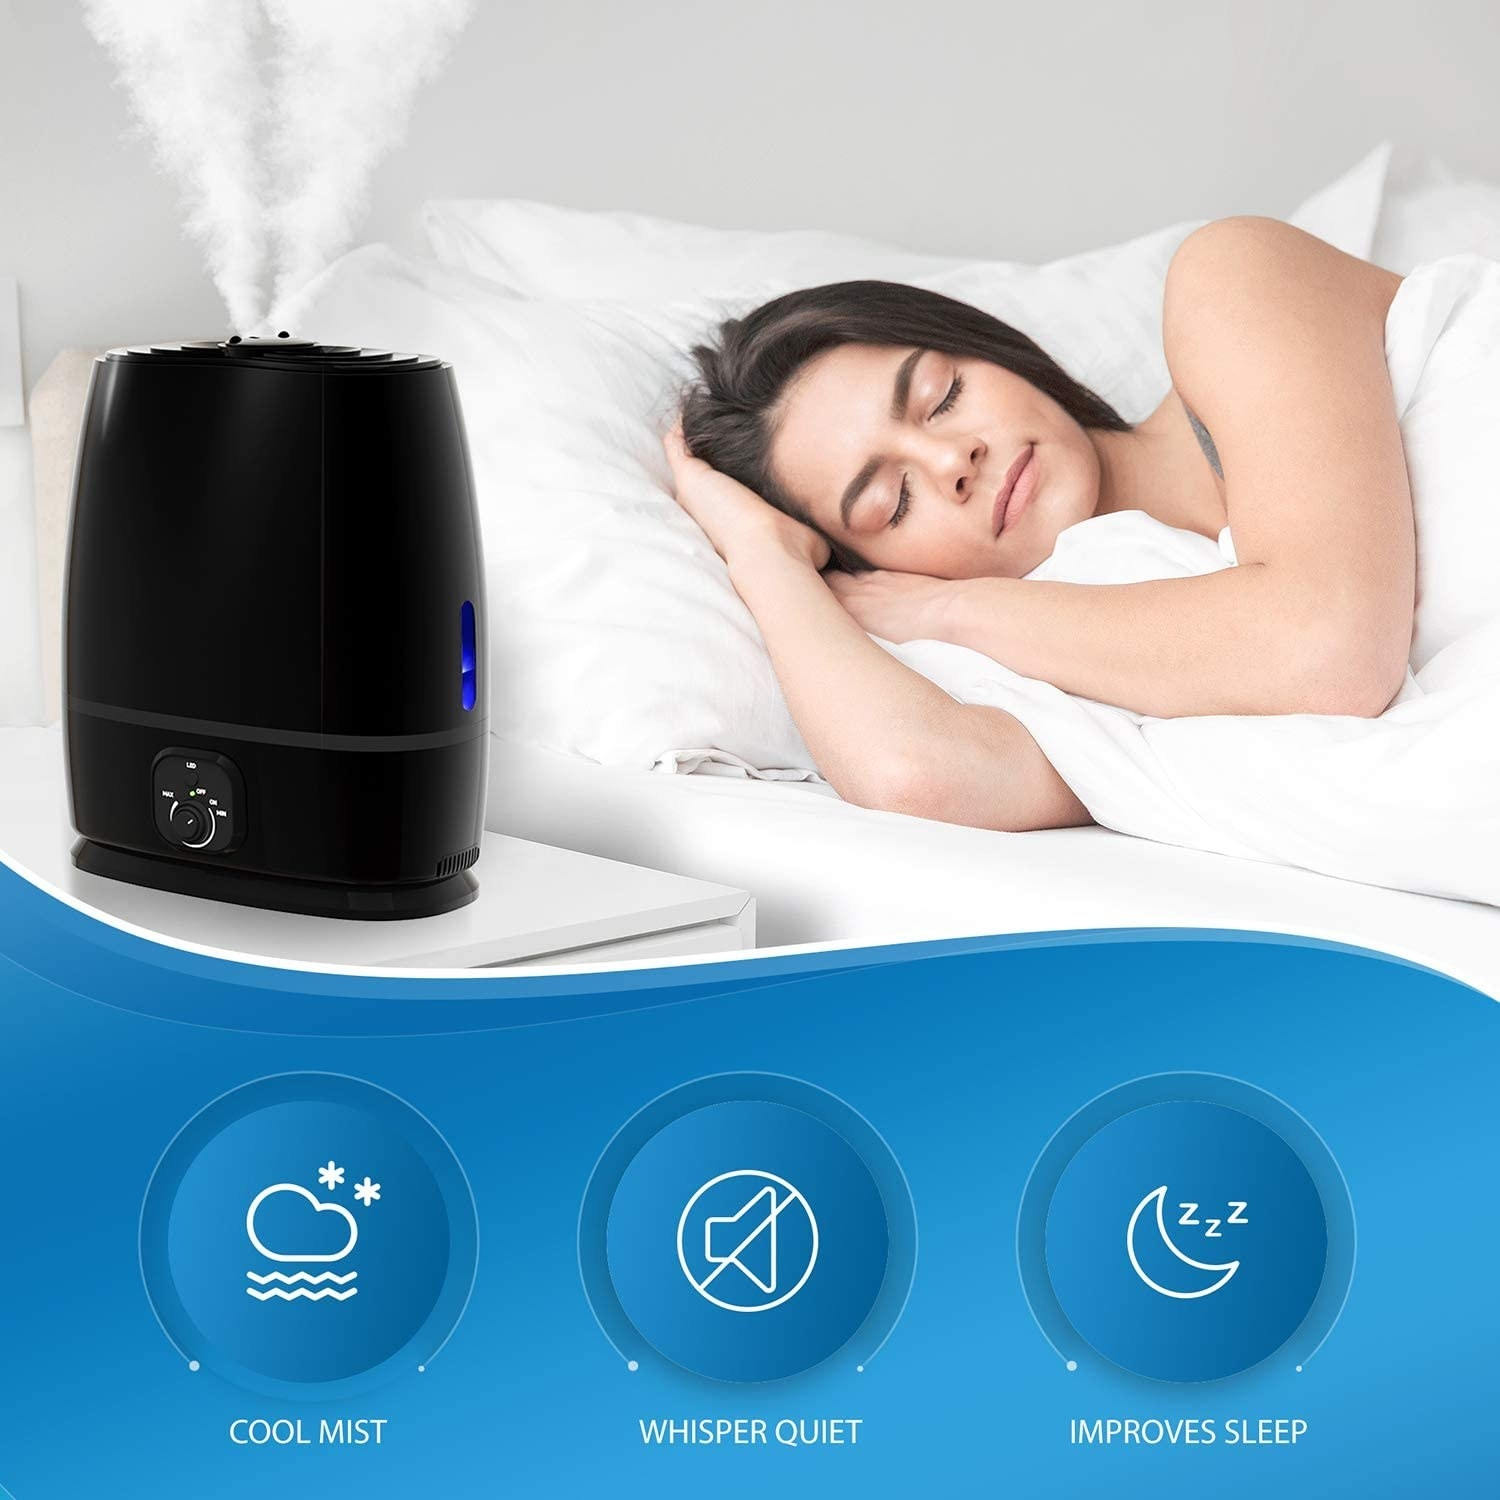 The cool mist, quiet humidifier